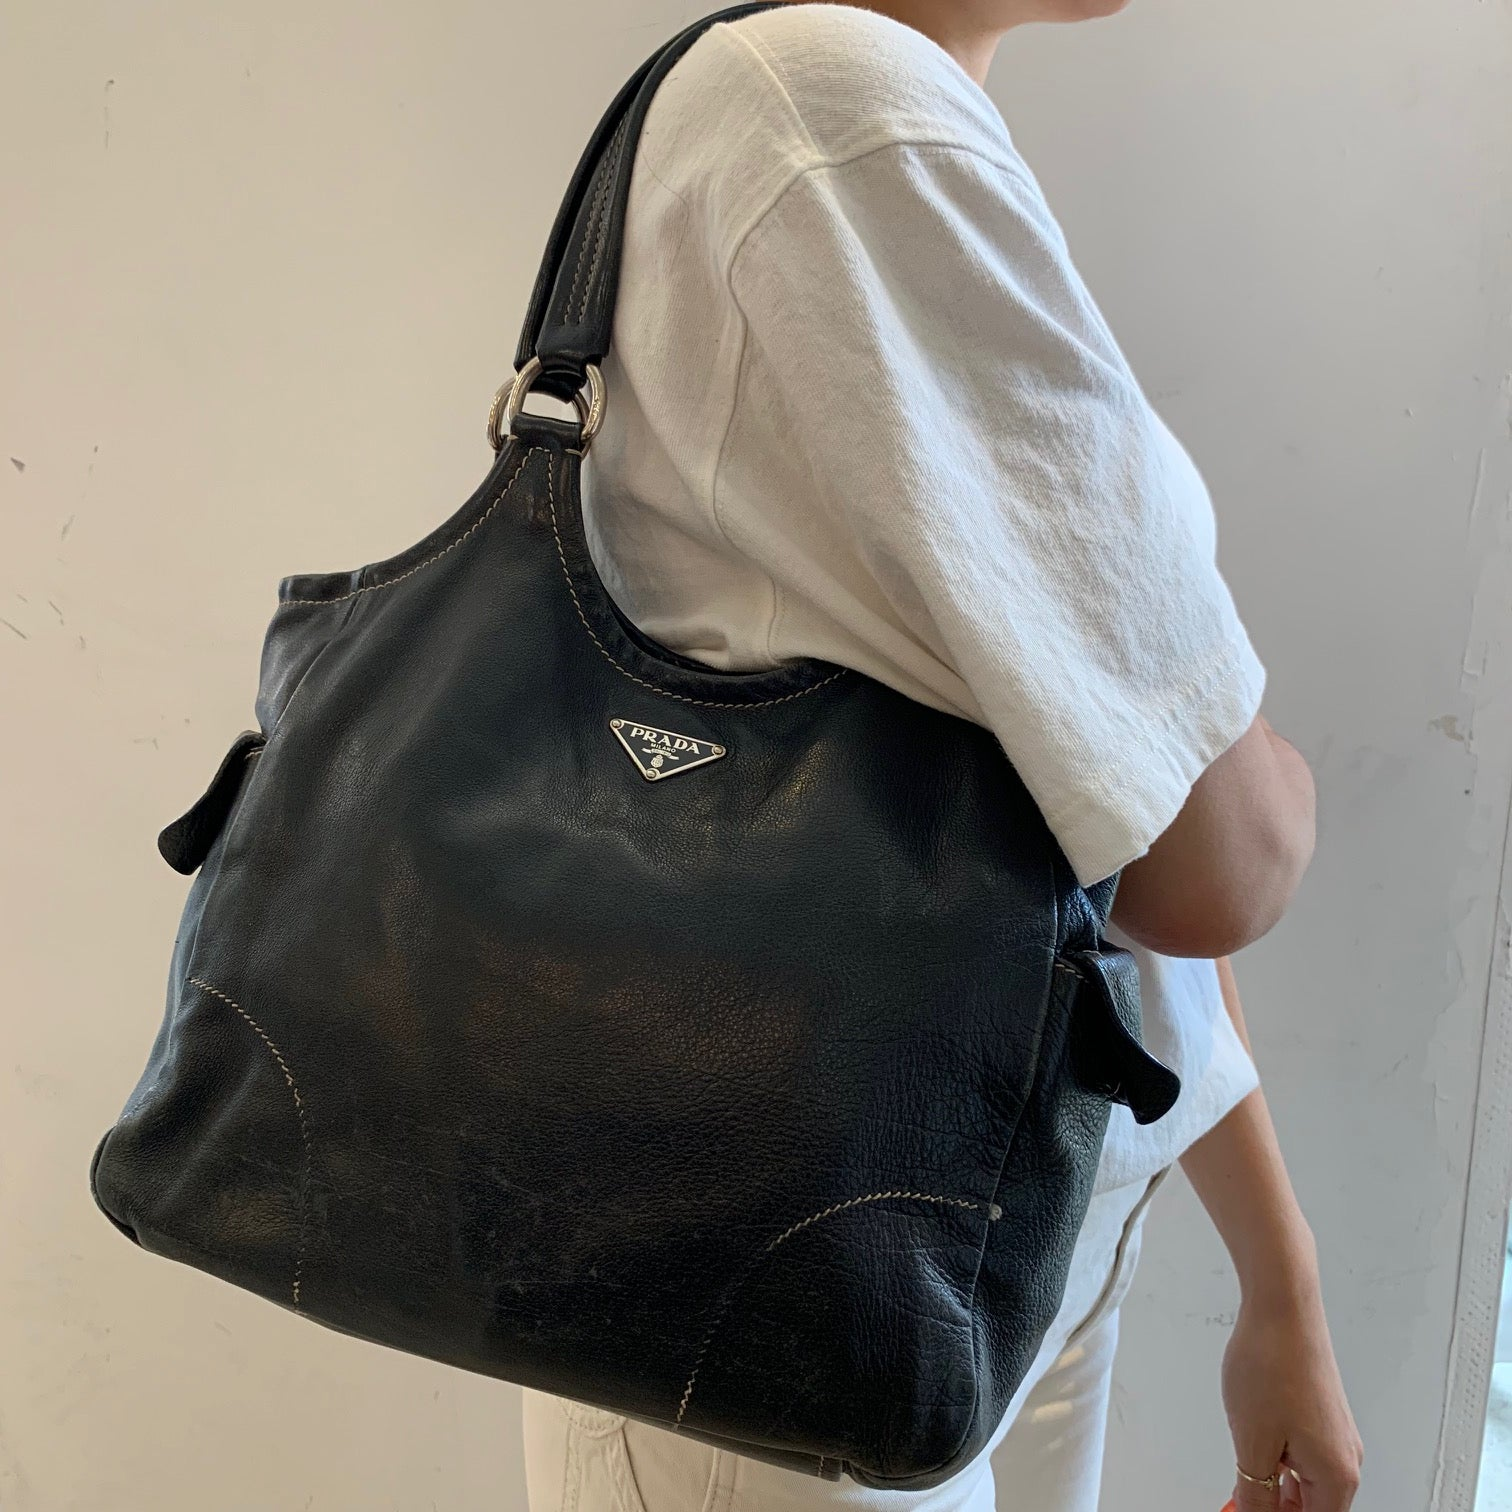 Prada Black Vintage Leather Handbag